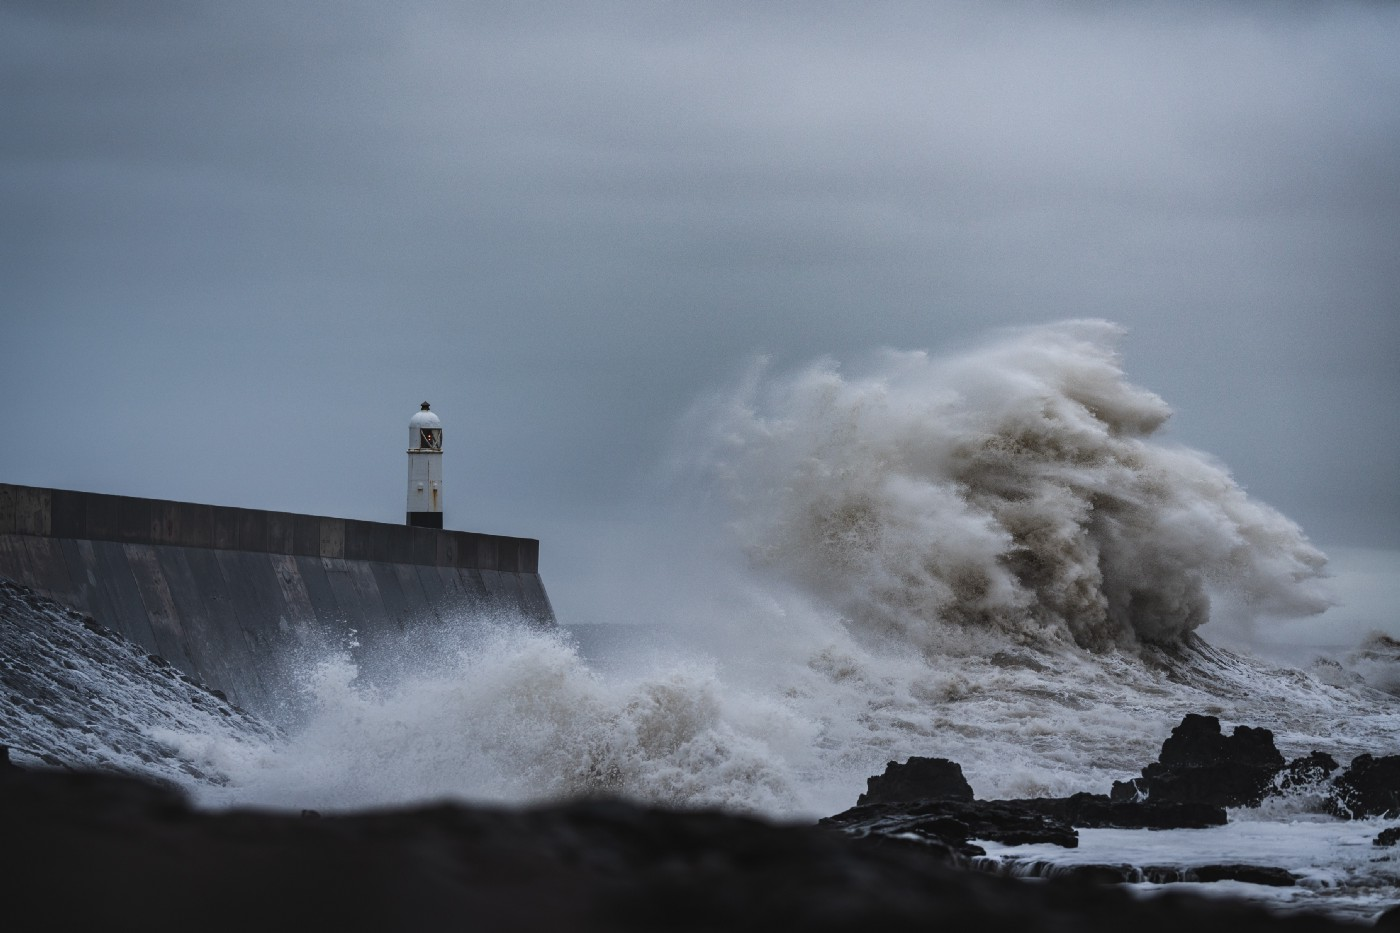 A huge wave crashes against a harbour wall with a small lighthouse